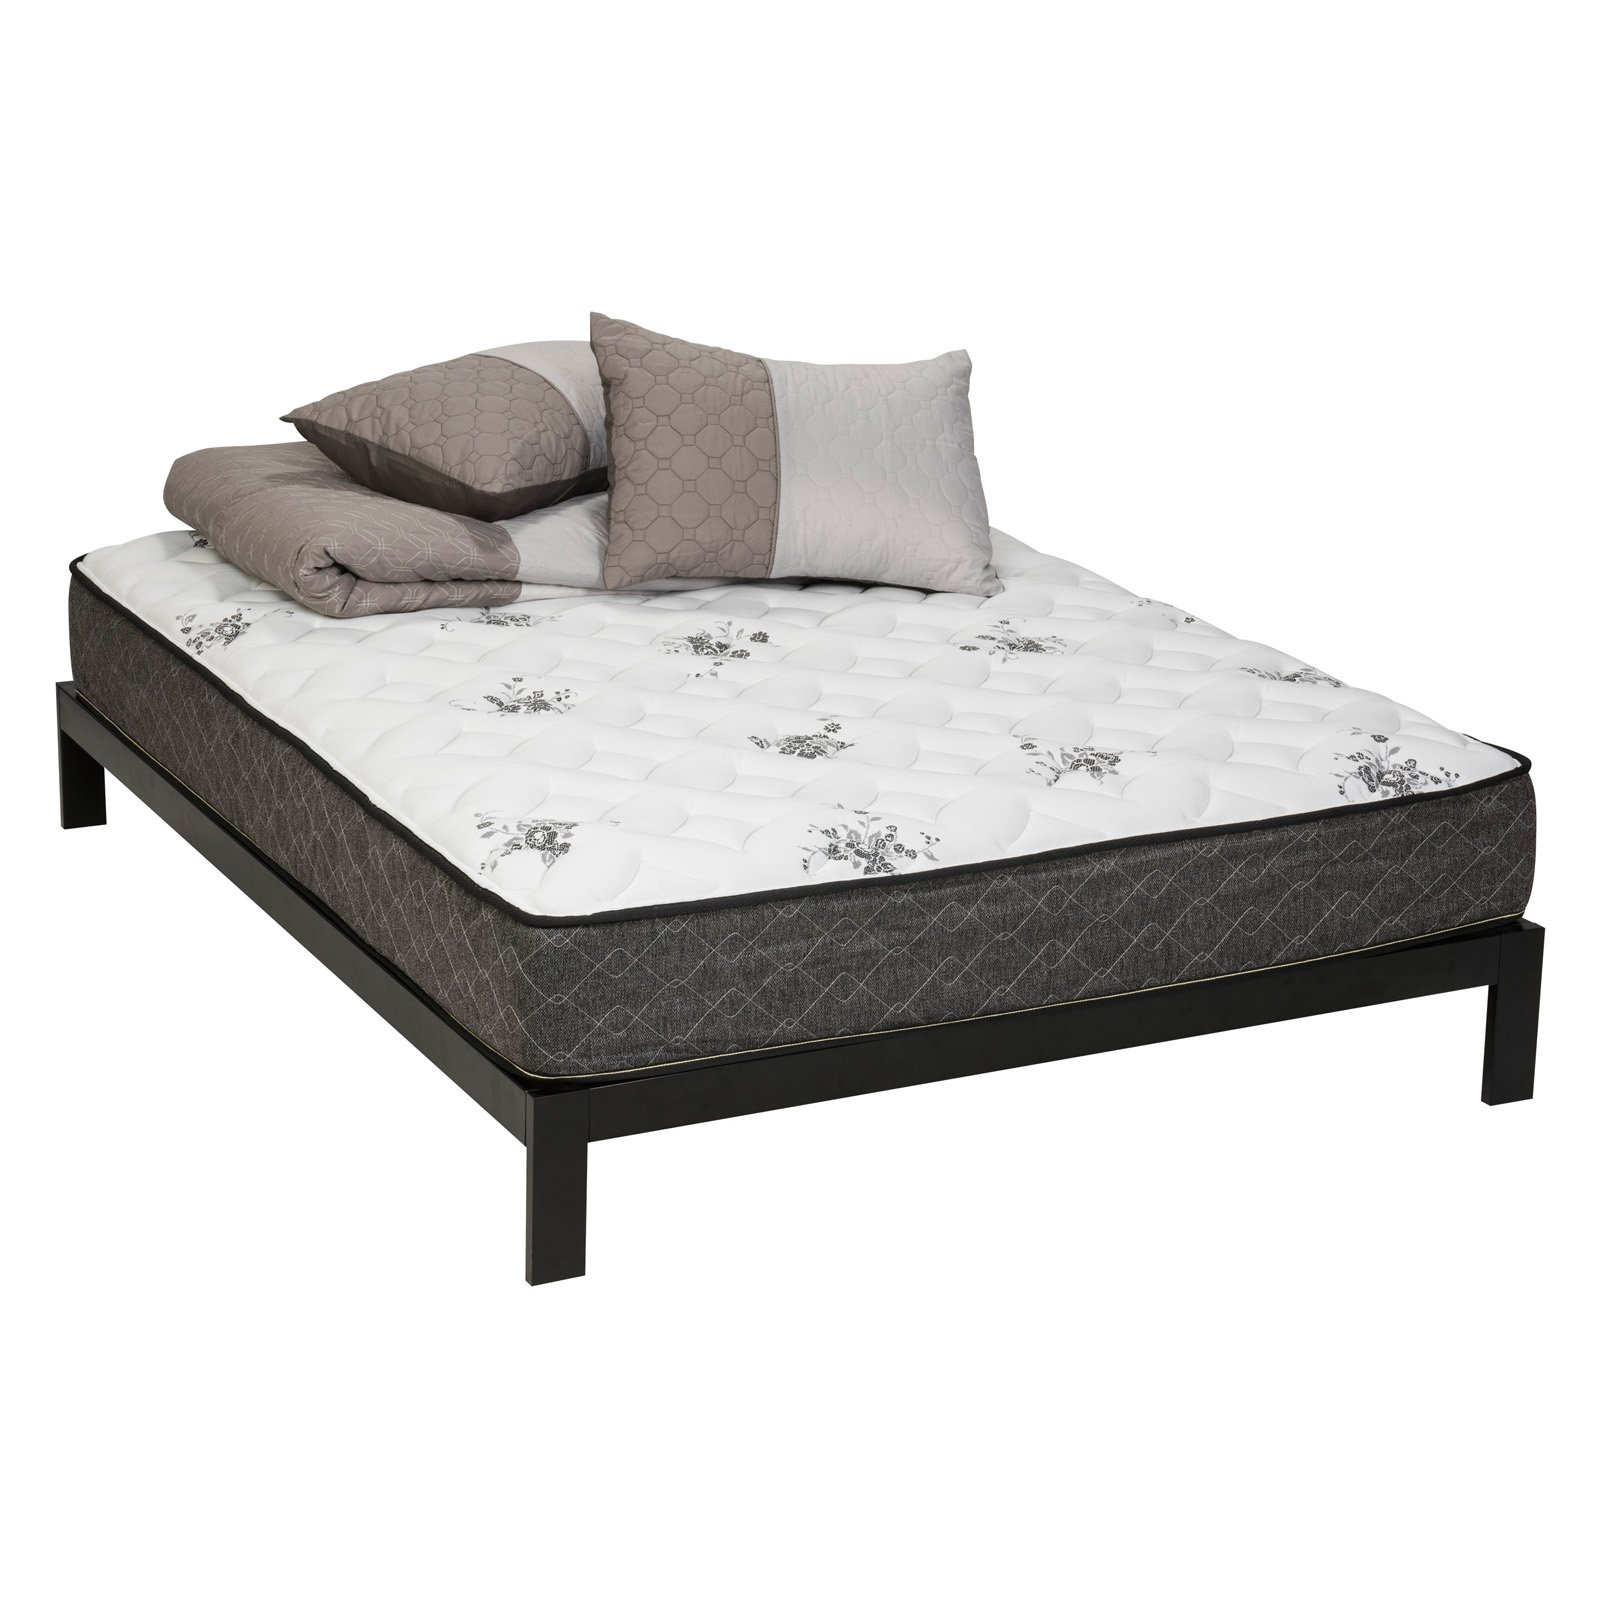 Tranquility Firm Hybrid Wrapped Coil, Memory Foam Mattress and Platform Set